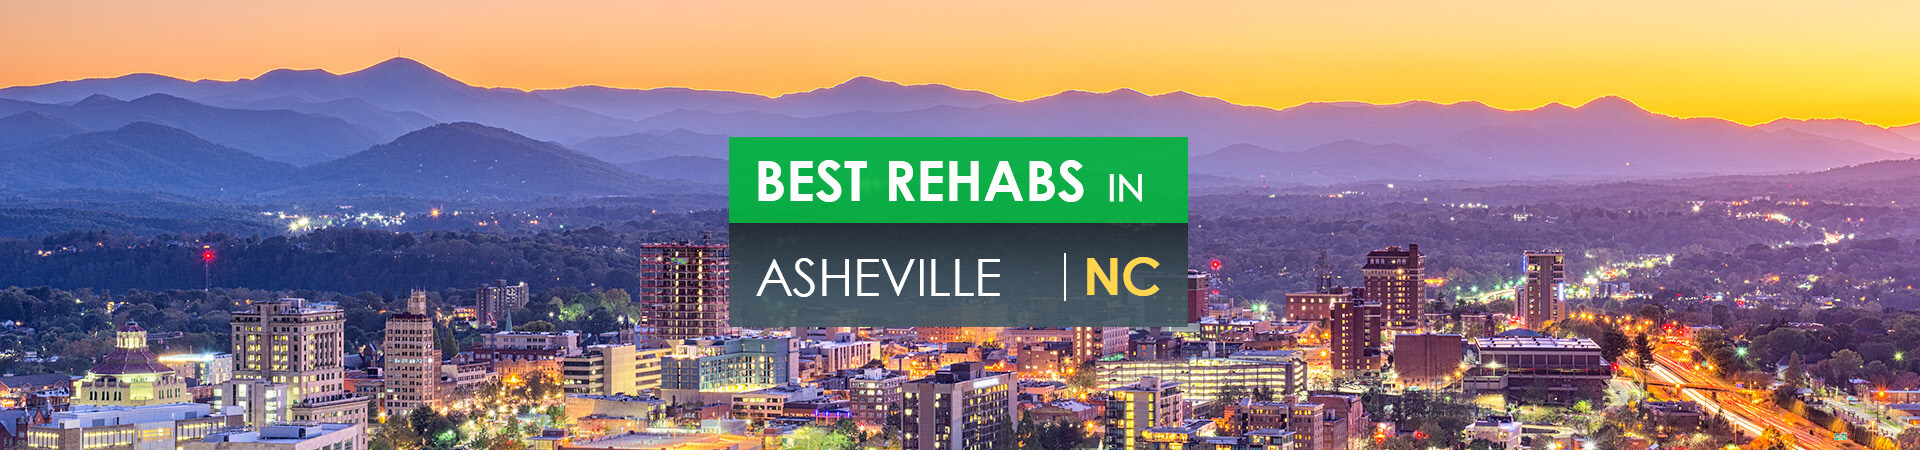 Best rehabs in Asheville, NC